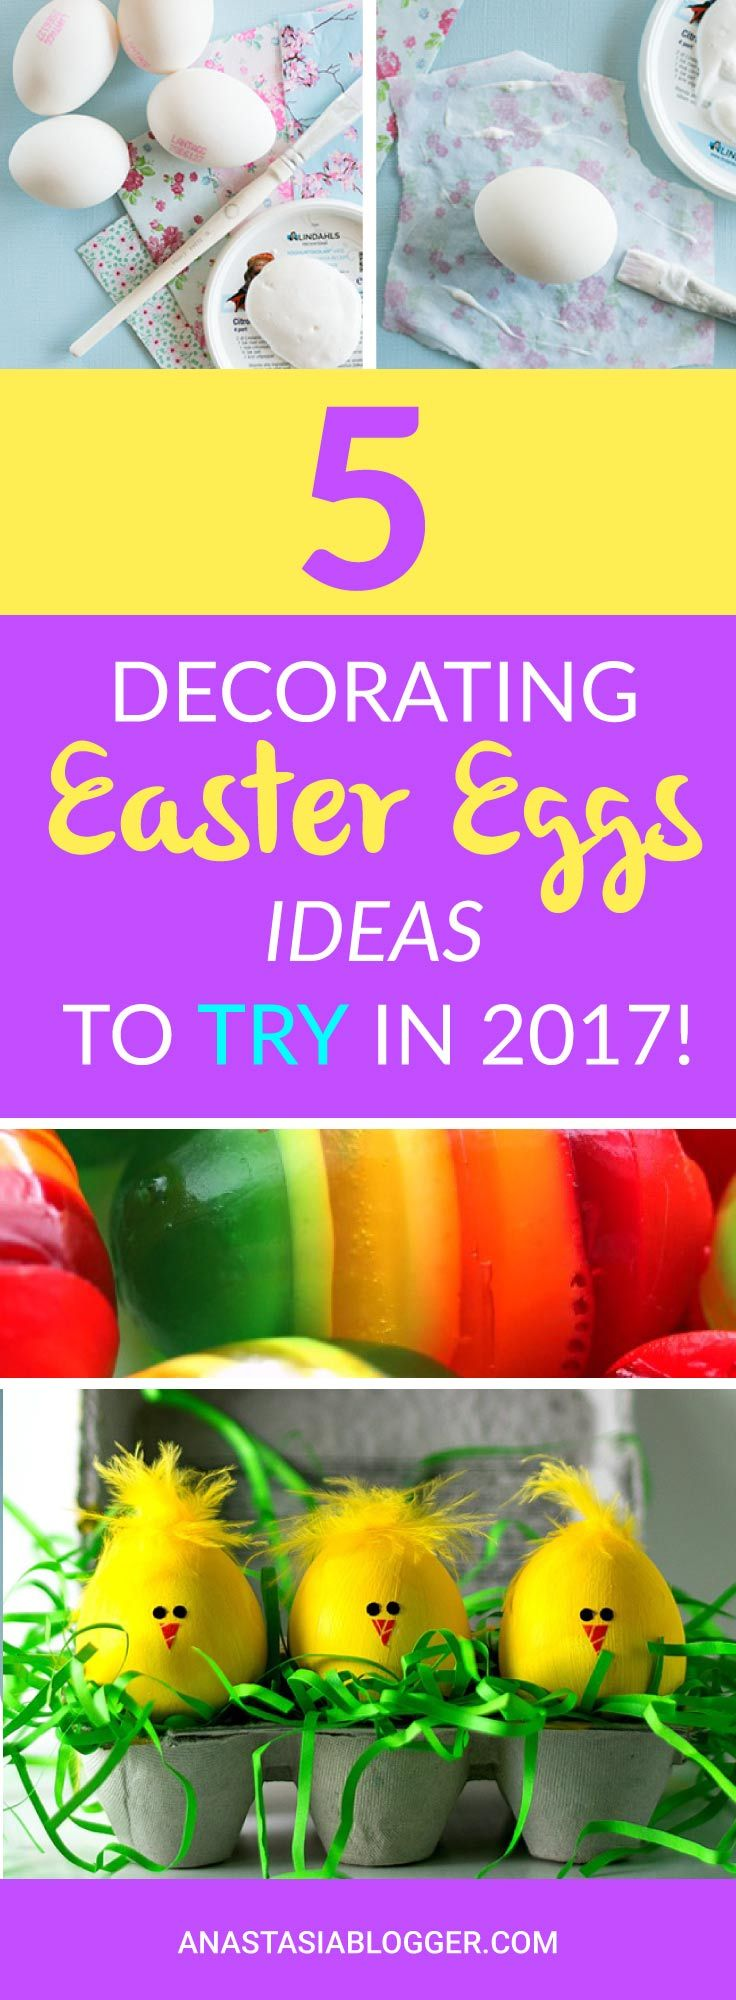 Check out my TOP 5 Decorating Easter Eggs Ideas to Try this year! Coloring Easter Eggs can be an adventure for all the family! Make your Easter Eggs Hunt in 2017 a Unique experience! Easter Eggs DIY tutorials and photos. Save Easter Eggs Decoration Ideas for the Day to Come!